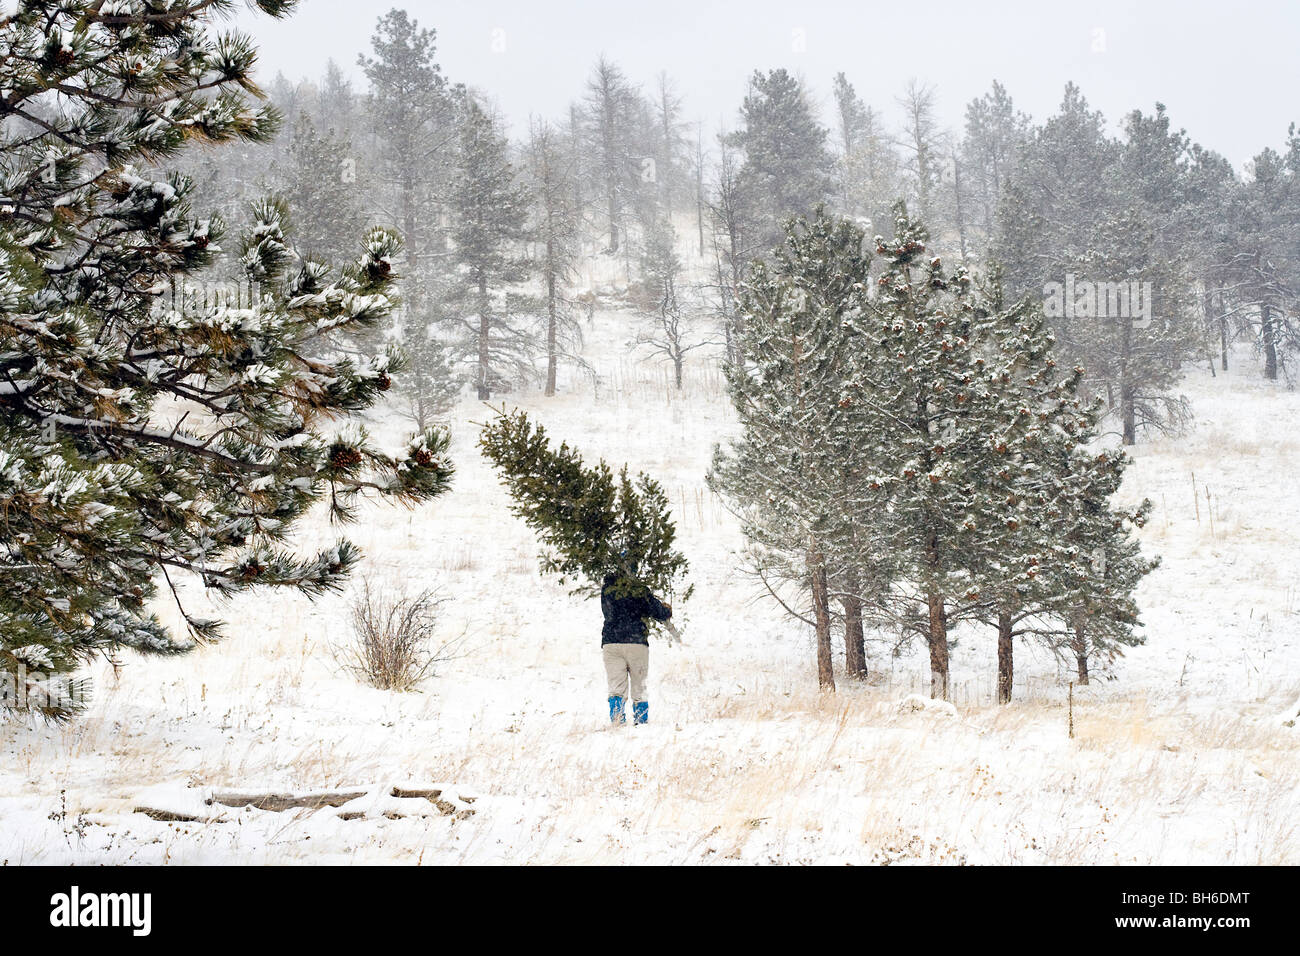 Cutting down a Christmas tree in the Colorado woods Stock Photo ...